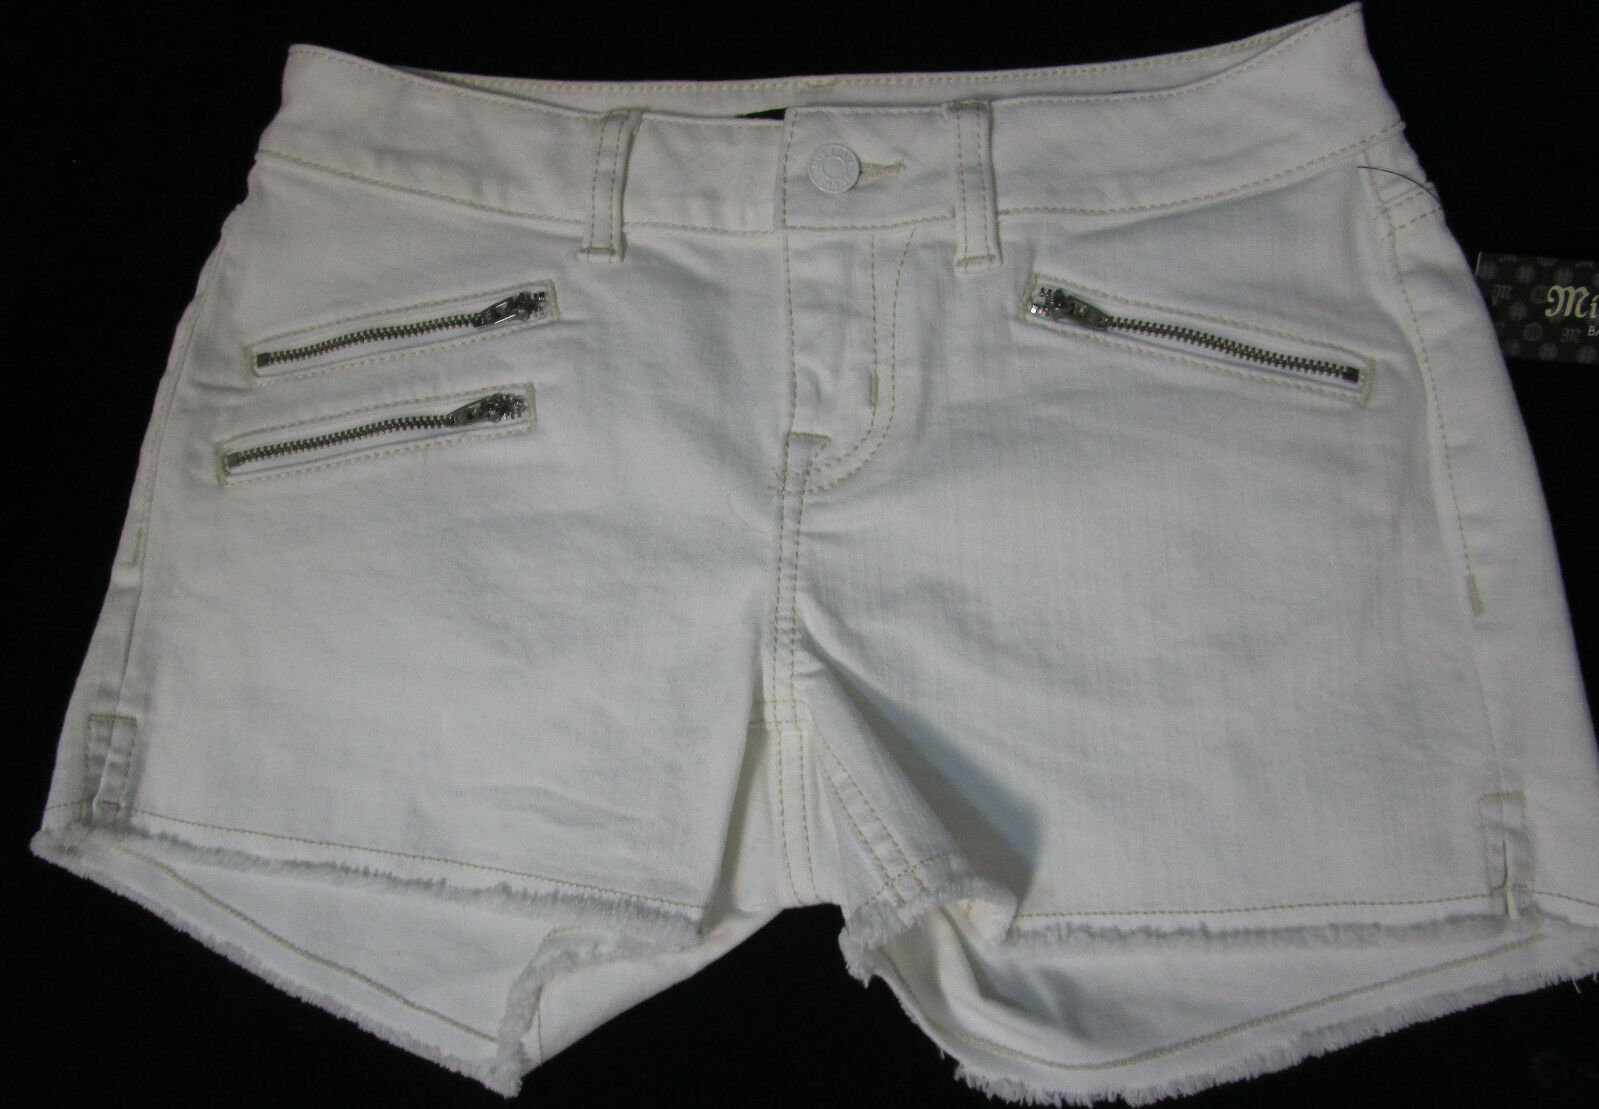 MISS ME jeans  white  id rise short  MO5210H4  25W  new nwt